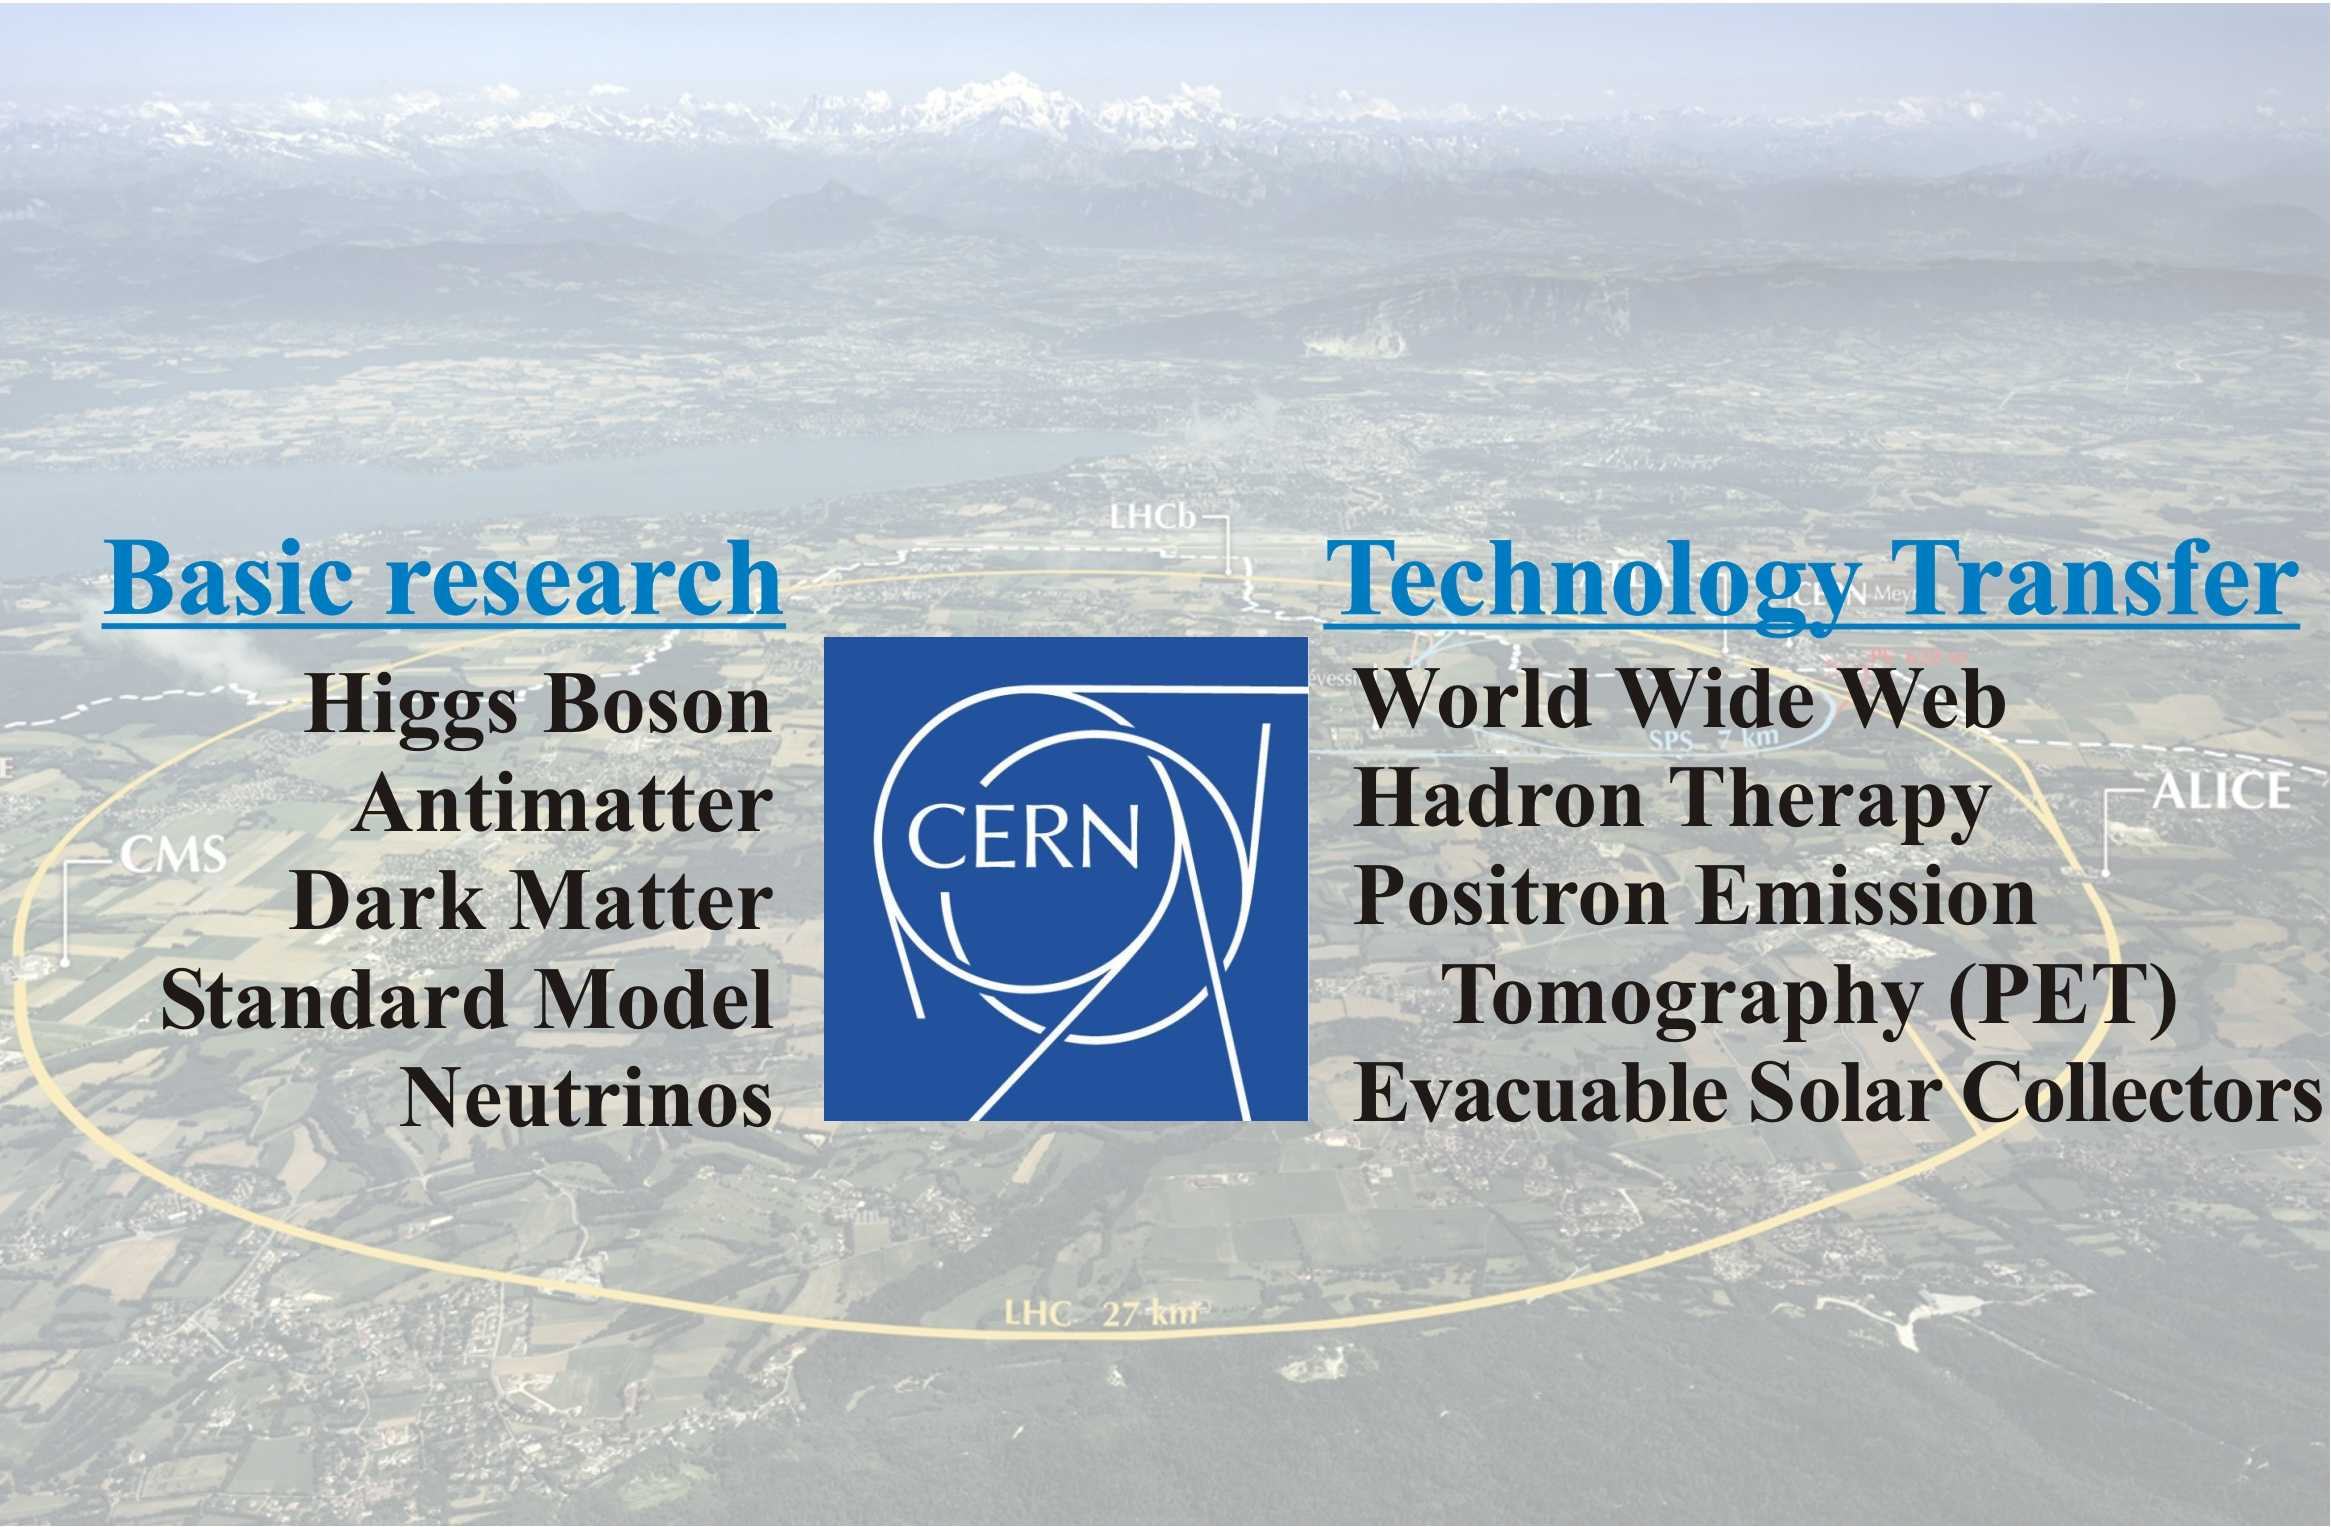 figures/CERN-BE-CO-HT/CERN_intro_1.jpg